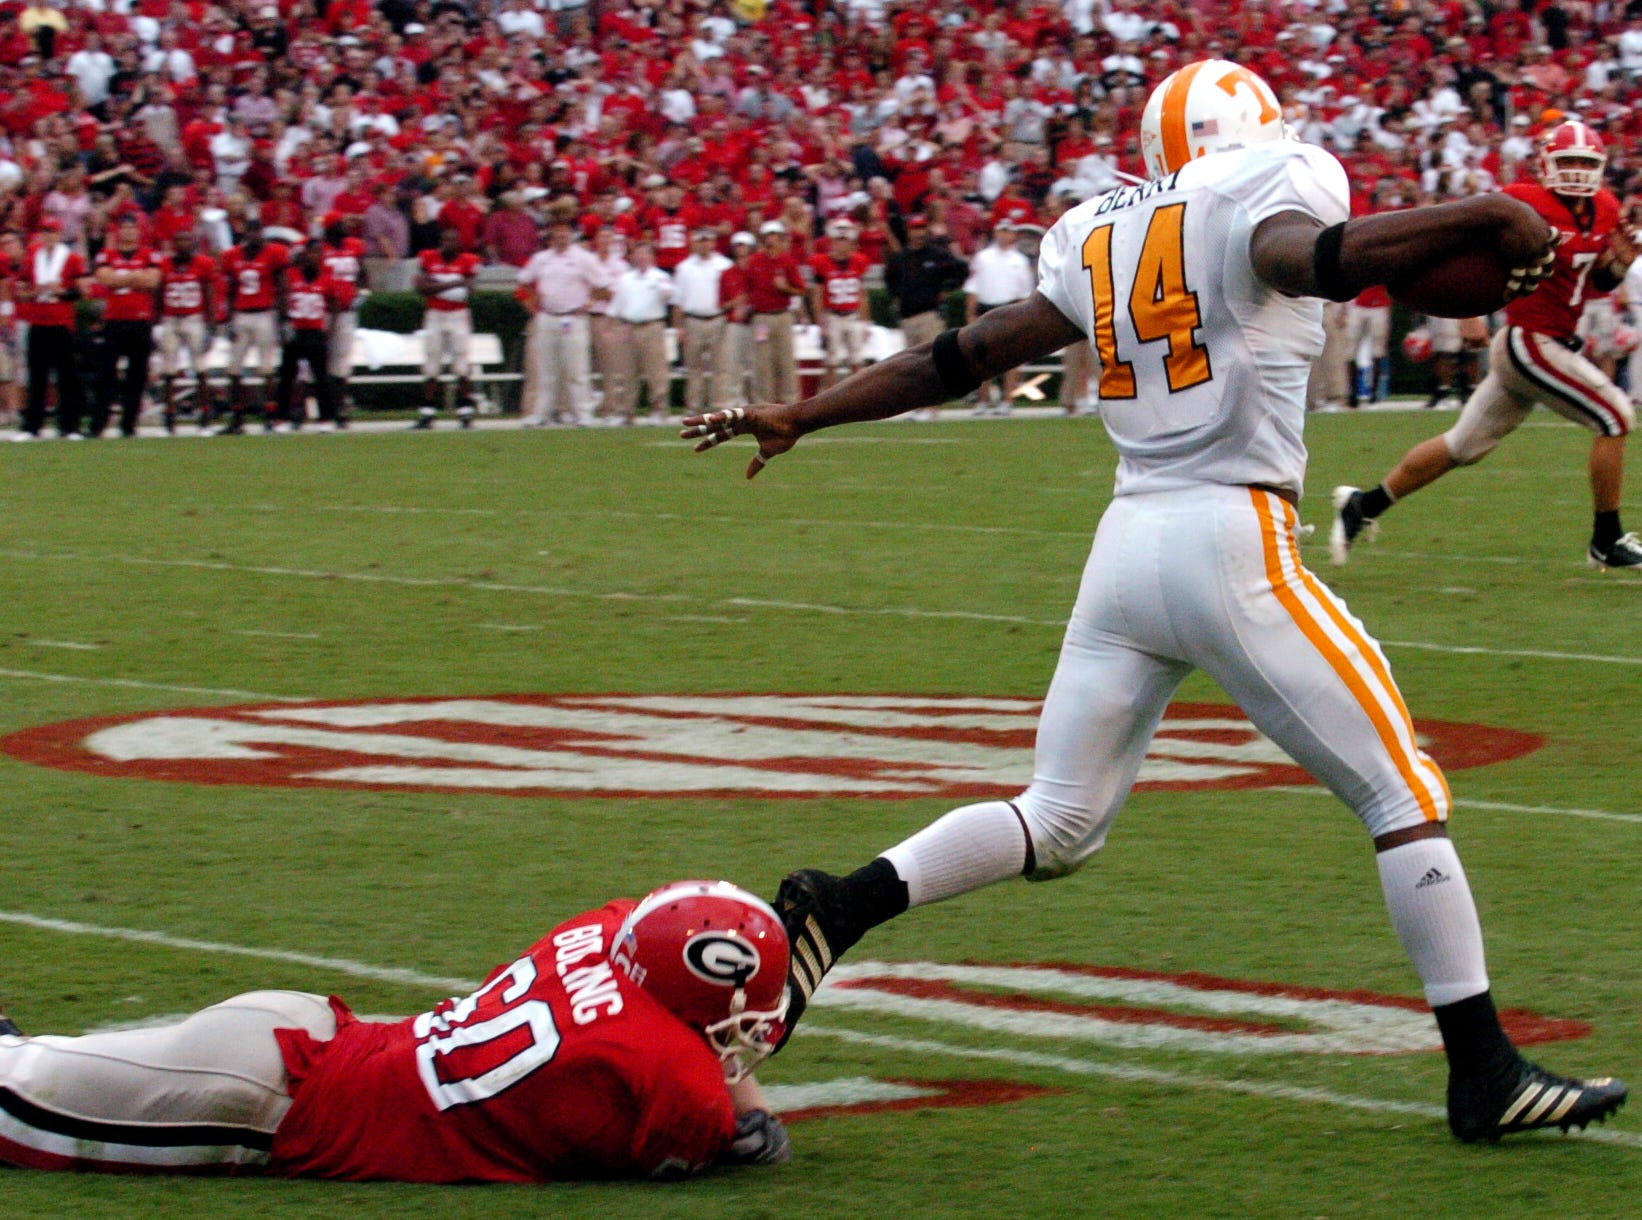 MICHAEL PATRICK/KNOXVILLE NEWS SENTINEL - Saturday, October 11, 2008  Tennessee safety Eric Berry escapes a tackle by Georgia guard Clint Boling while running back an interception on Saturday at Sanford Stadium in Athens, Ga. The 54-yard return in the third quarter to set up Tennessee's second touchdown. Georgia beat Tennessee 26-14.